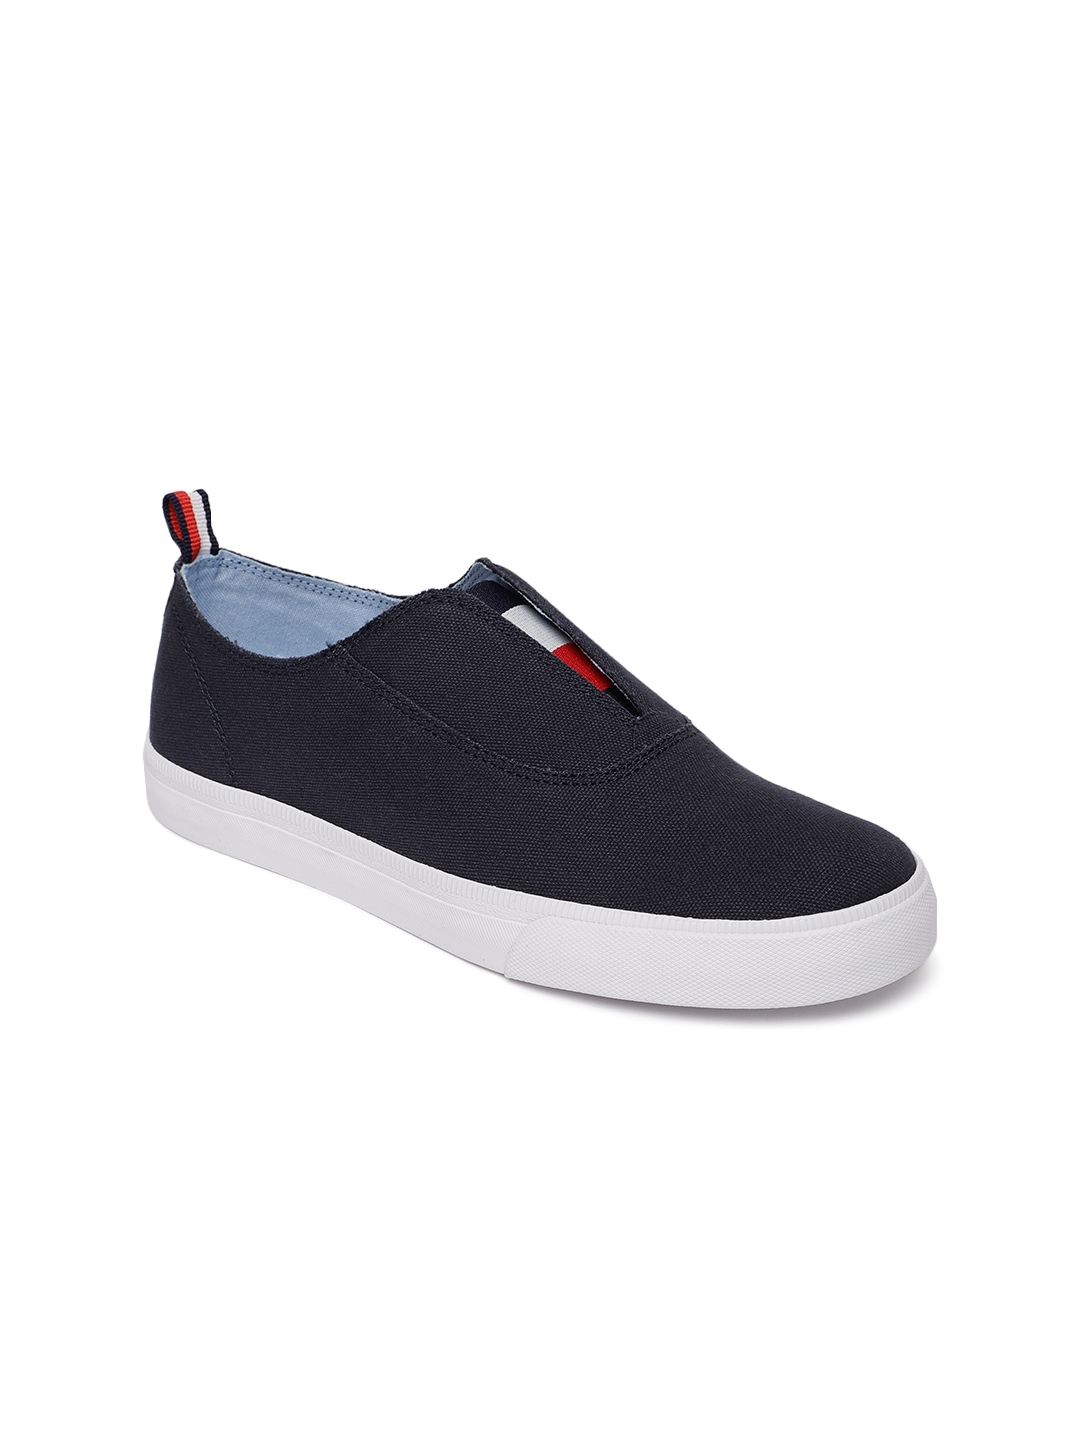 b57cb9466 Buy Tommy Hilfiger Women Navy Sneakers - Casual Shoes for Women ...